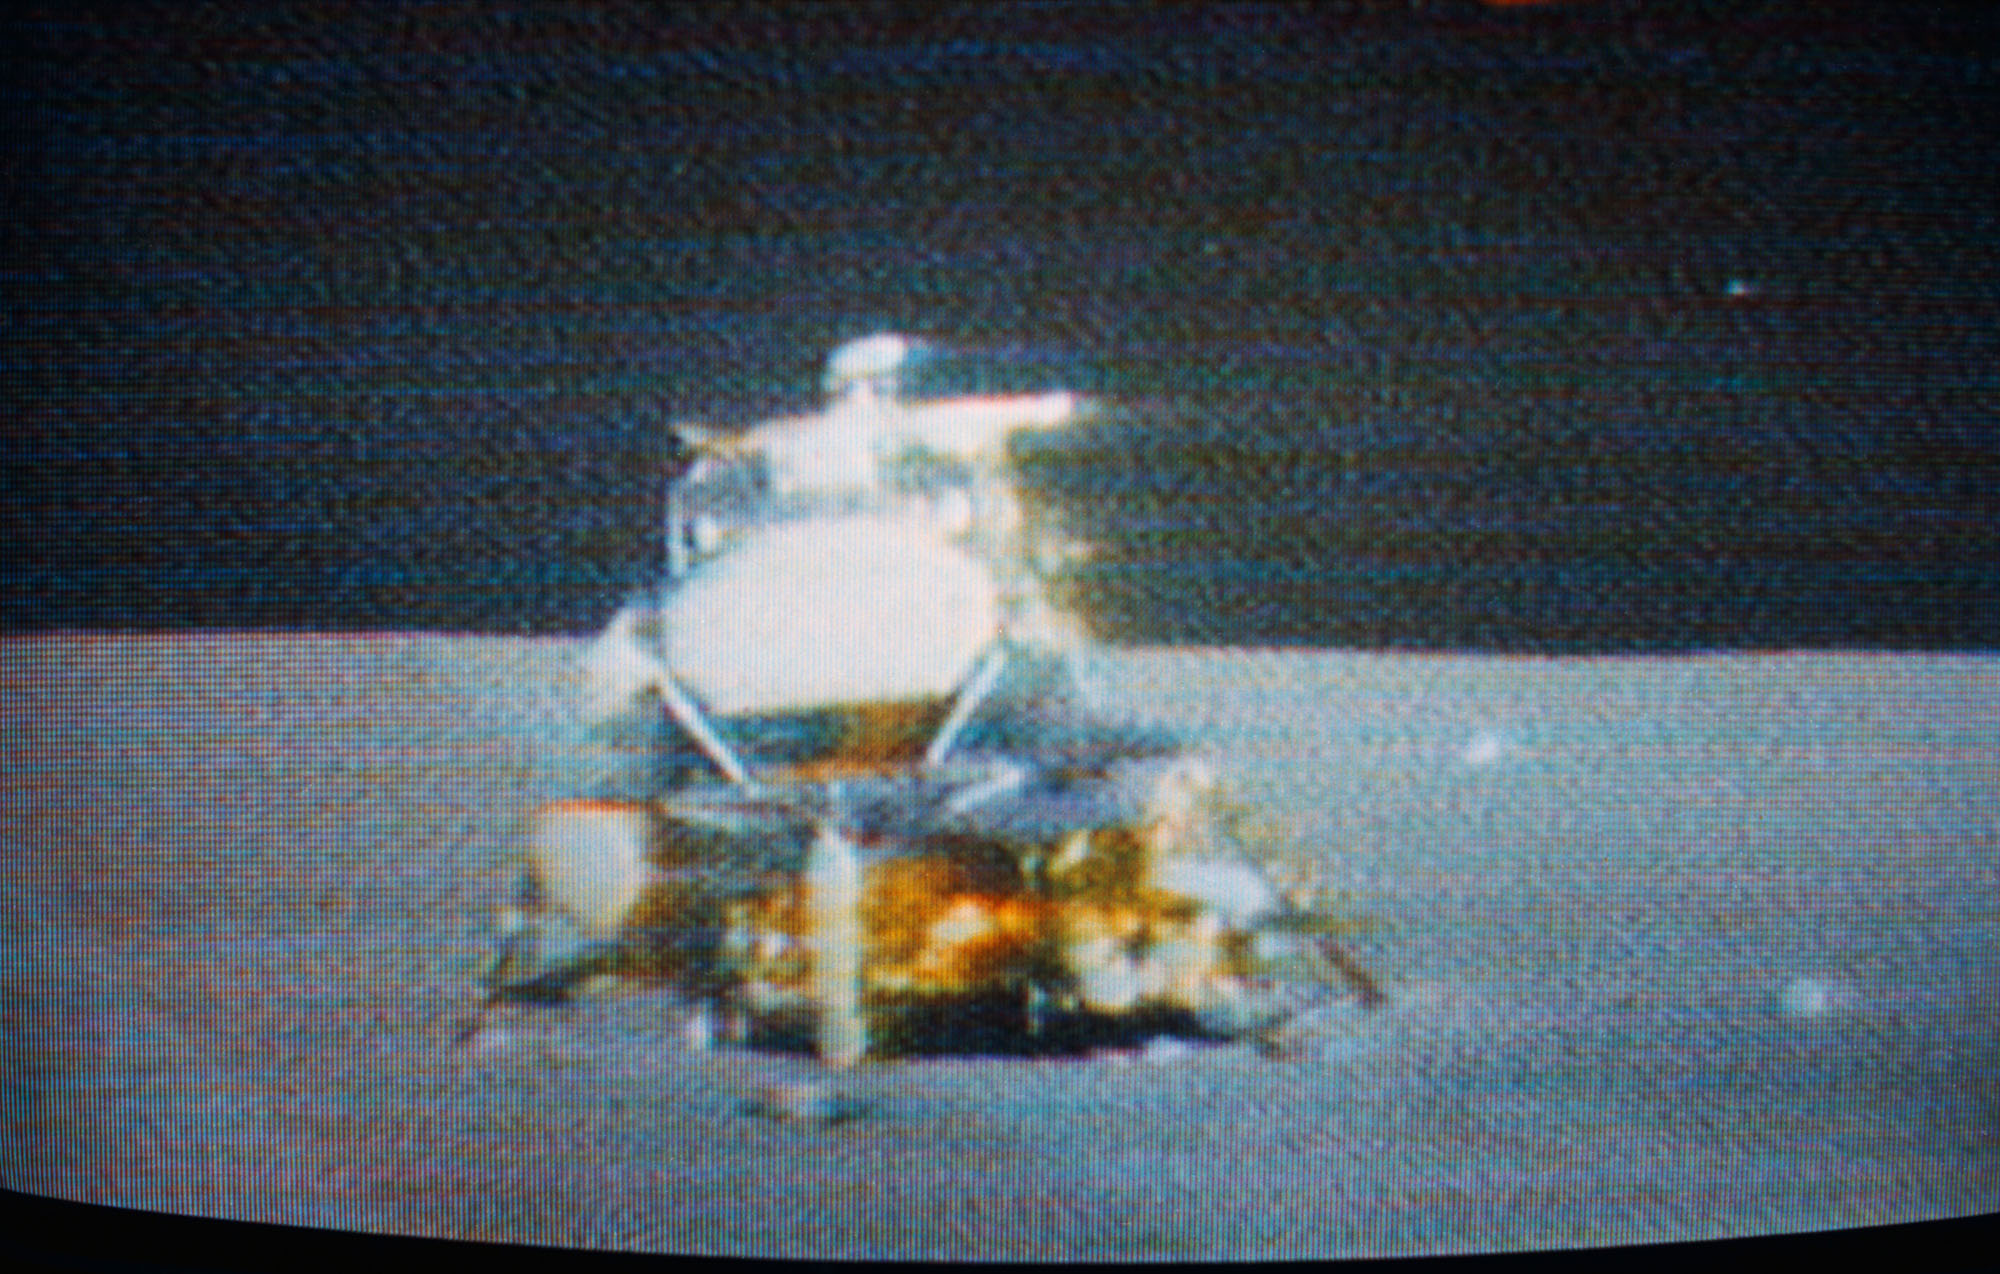 On This Day in Space! Aug. 2, 1971: Apollo 15 makes 1st televised lunar liftoff